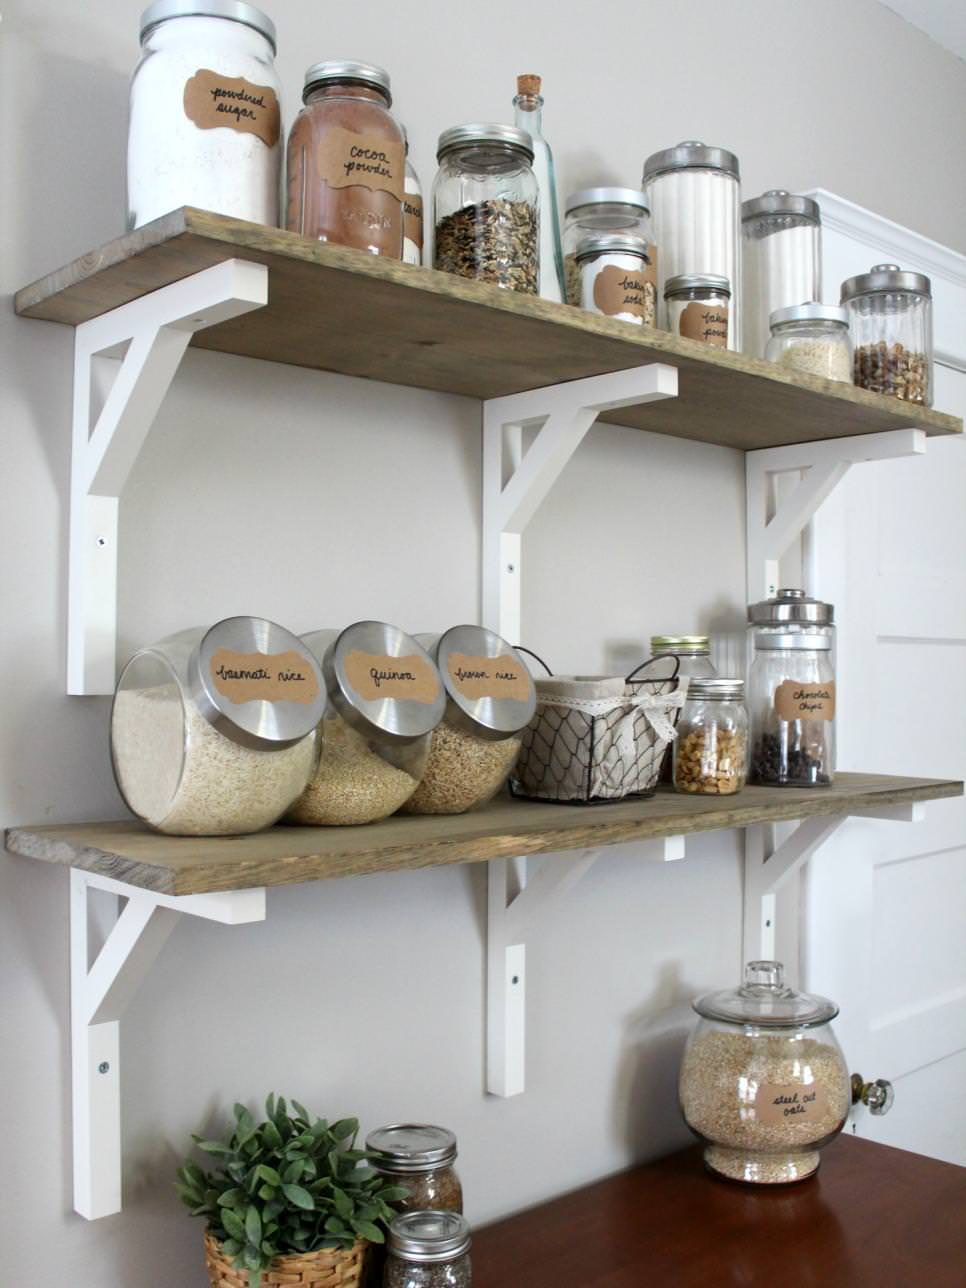 Space Corner Keuken 23+ Diy Shelves Furniture, Designs, Ideas, Plans | Design